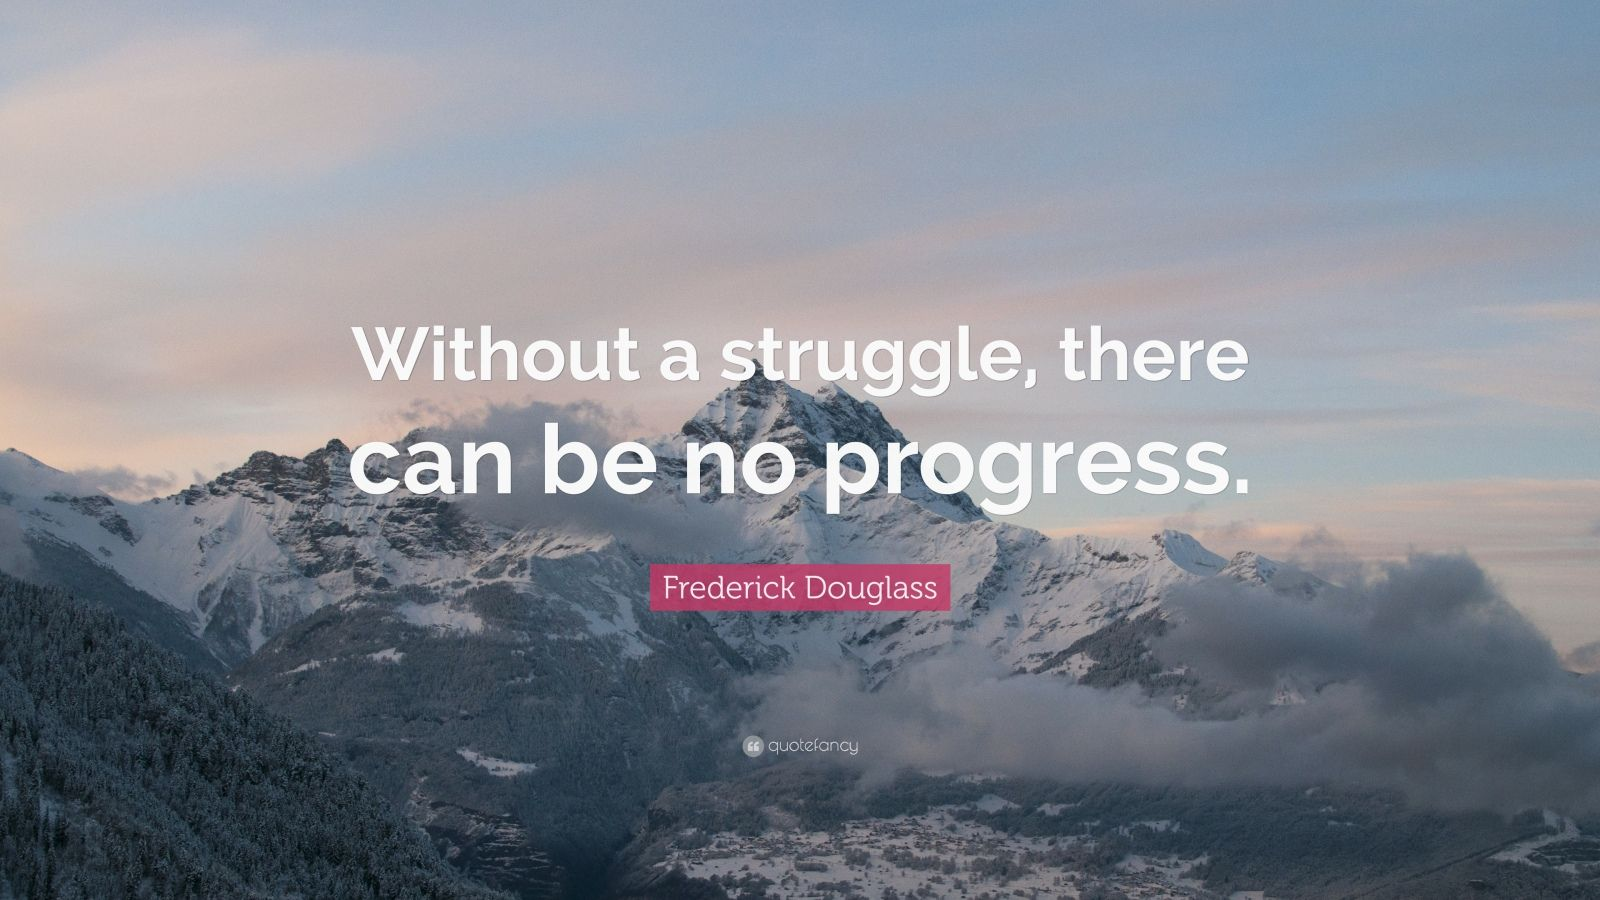 No Progress without Struggle There Can Be